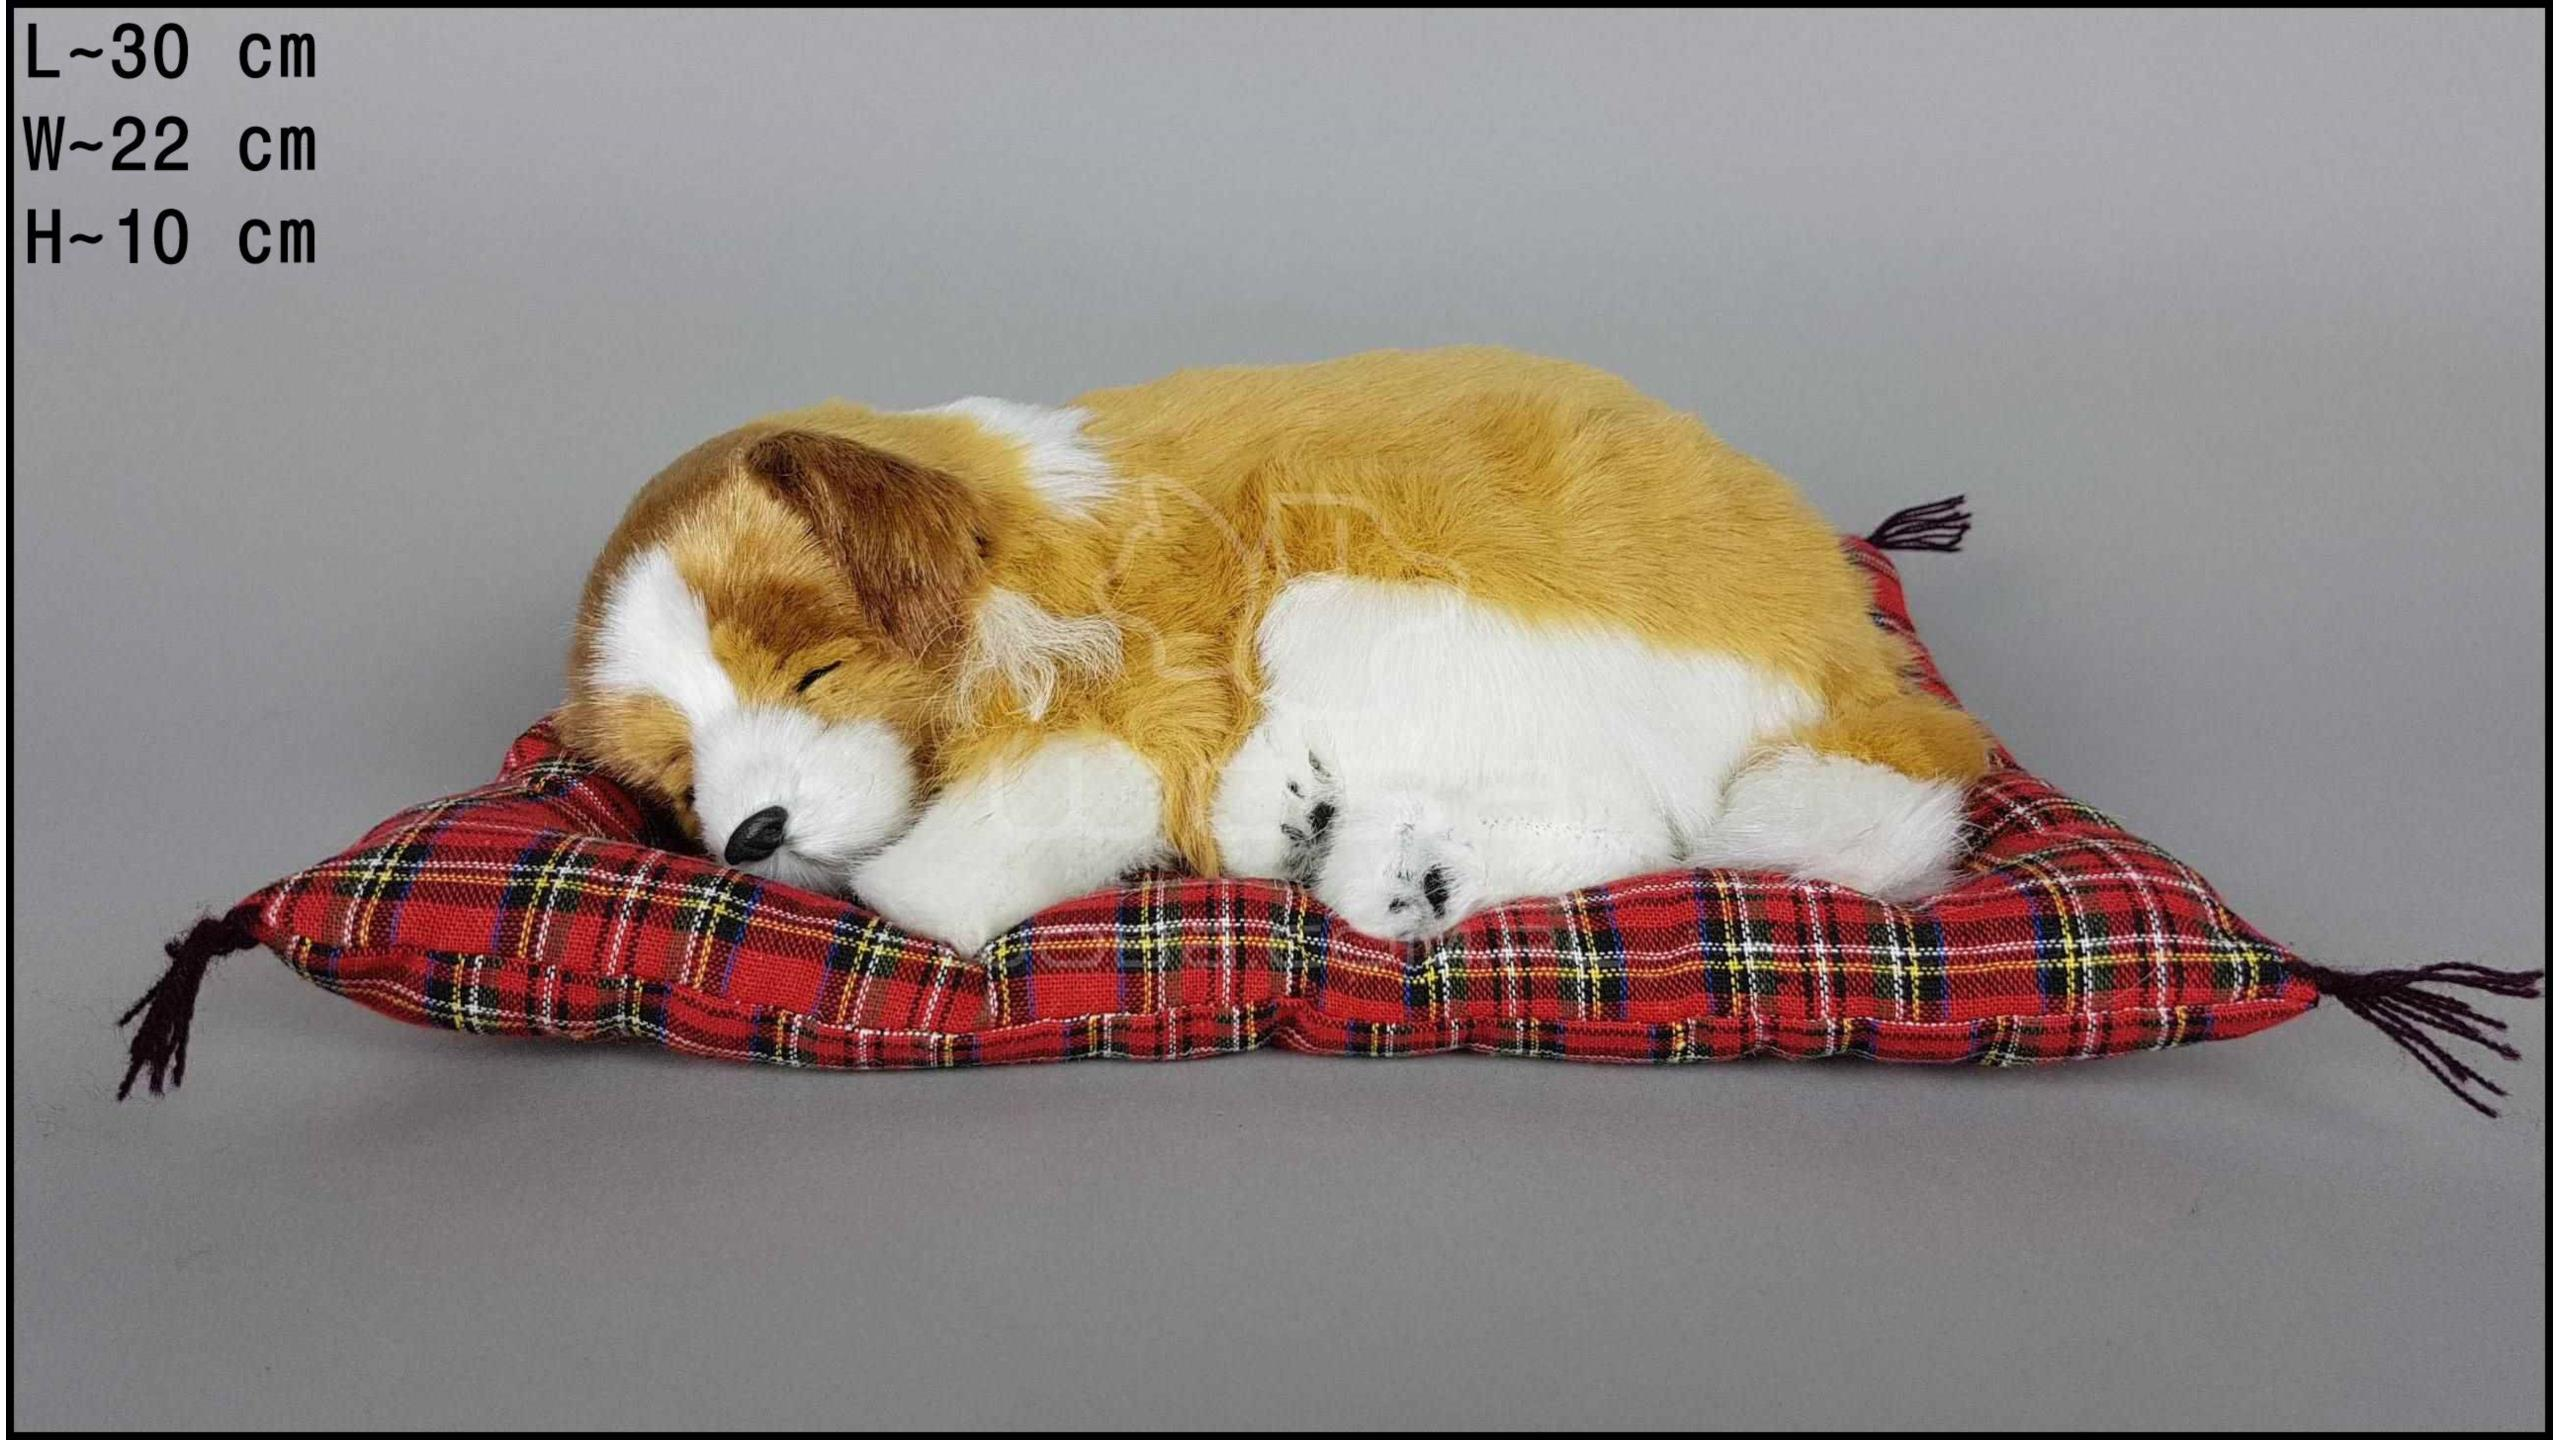 Dog Collie on a pillow - Size L